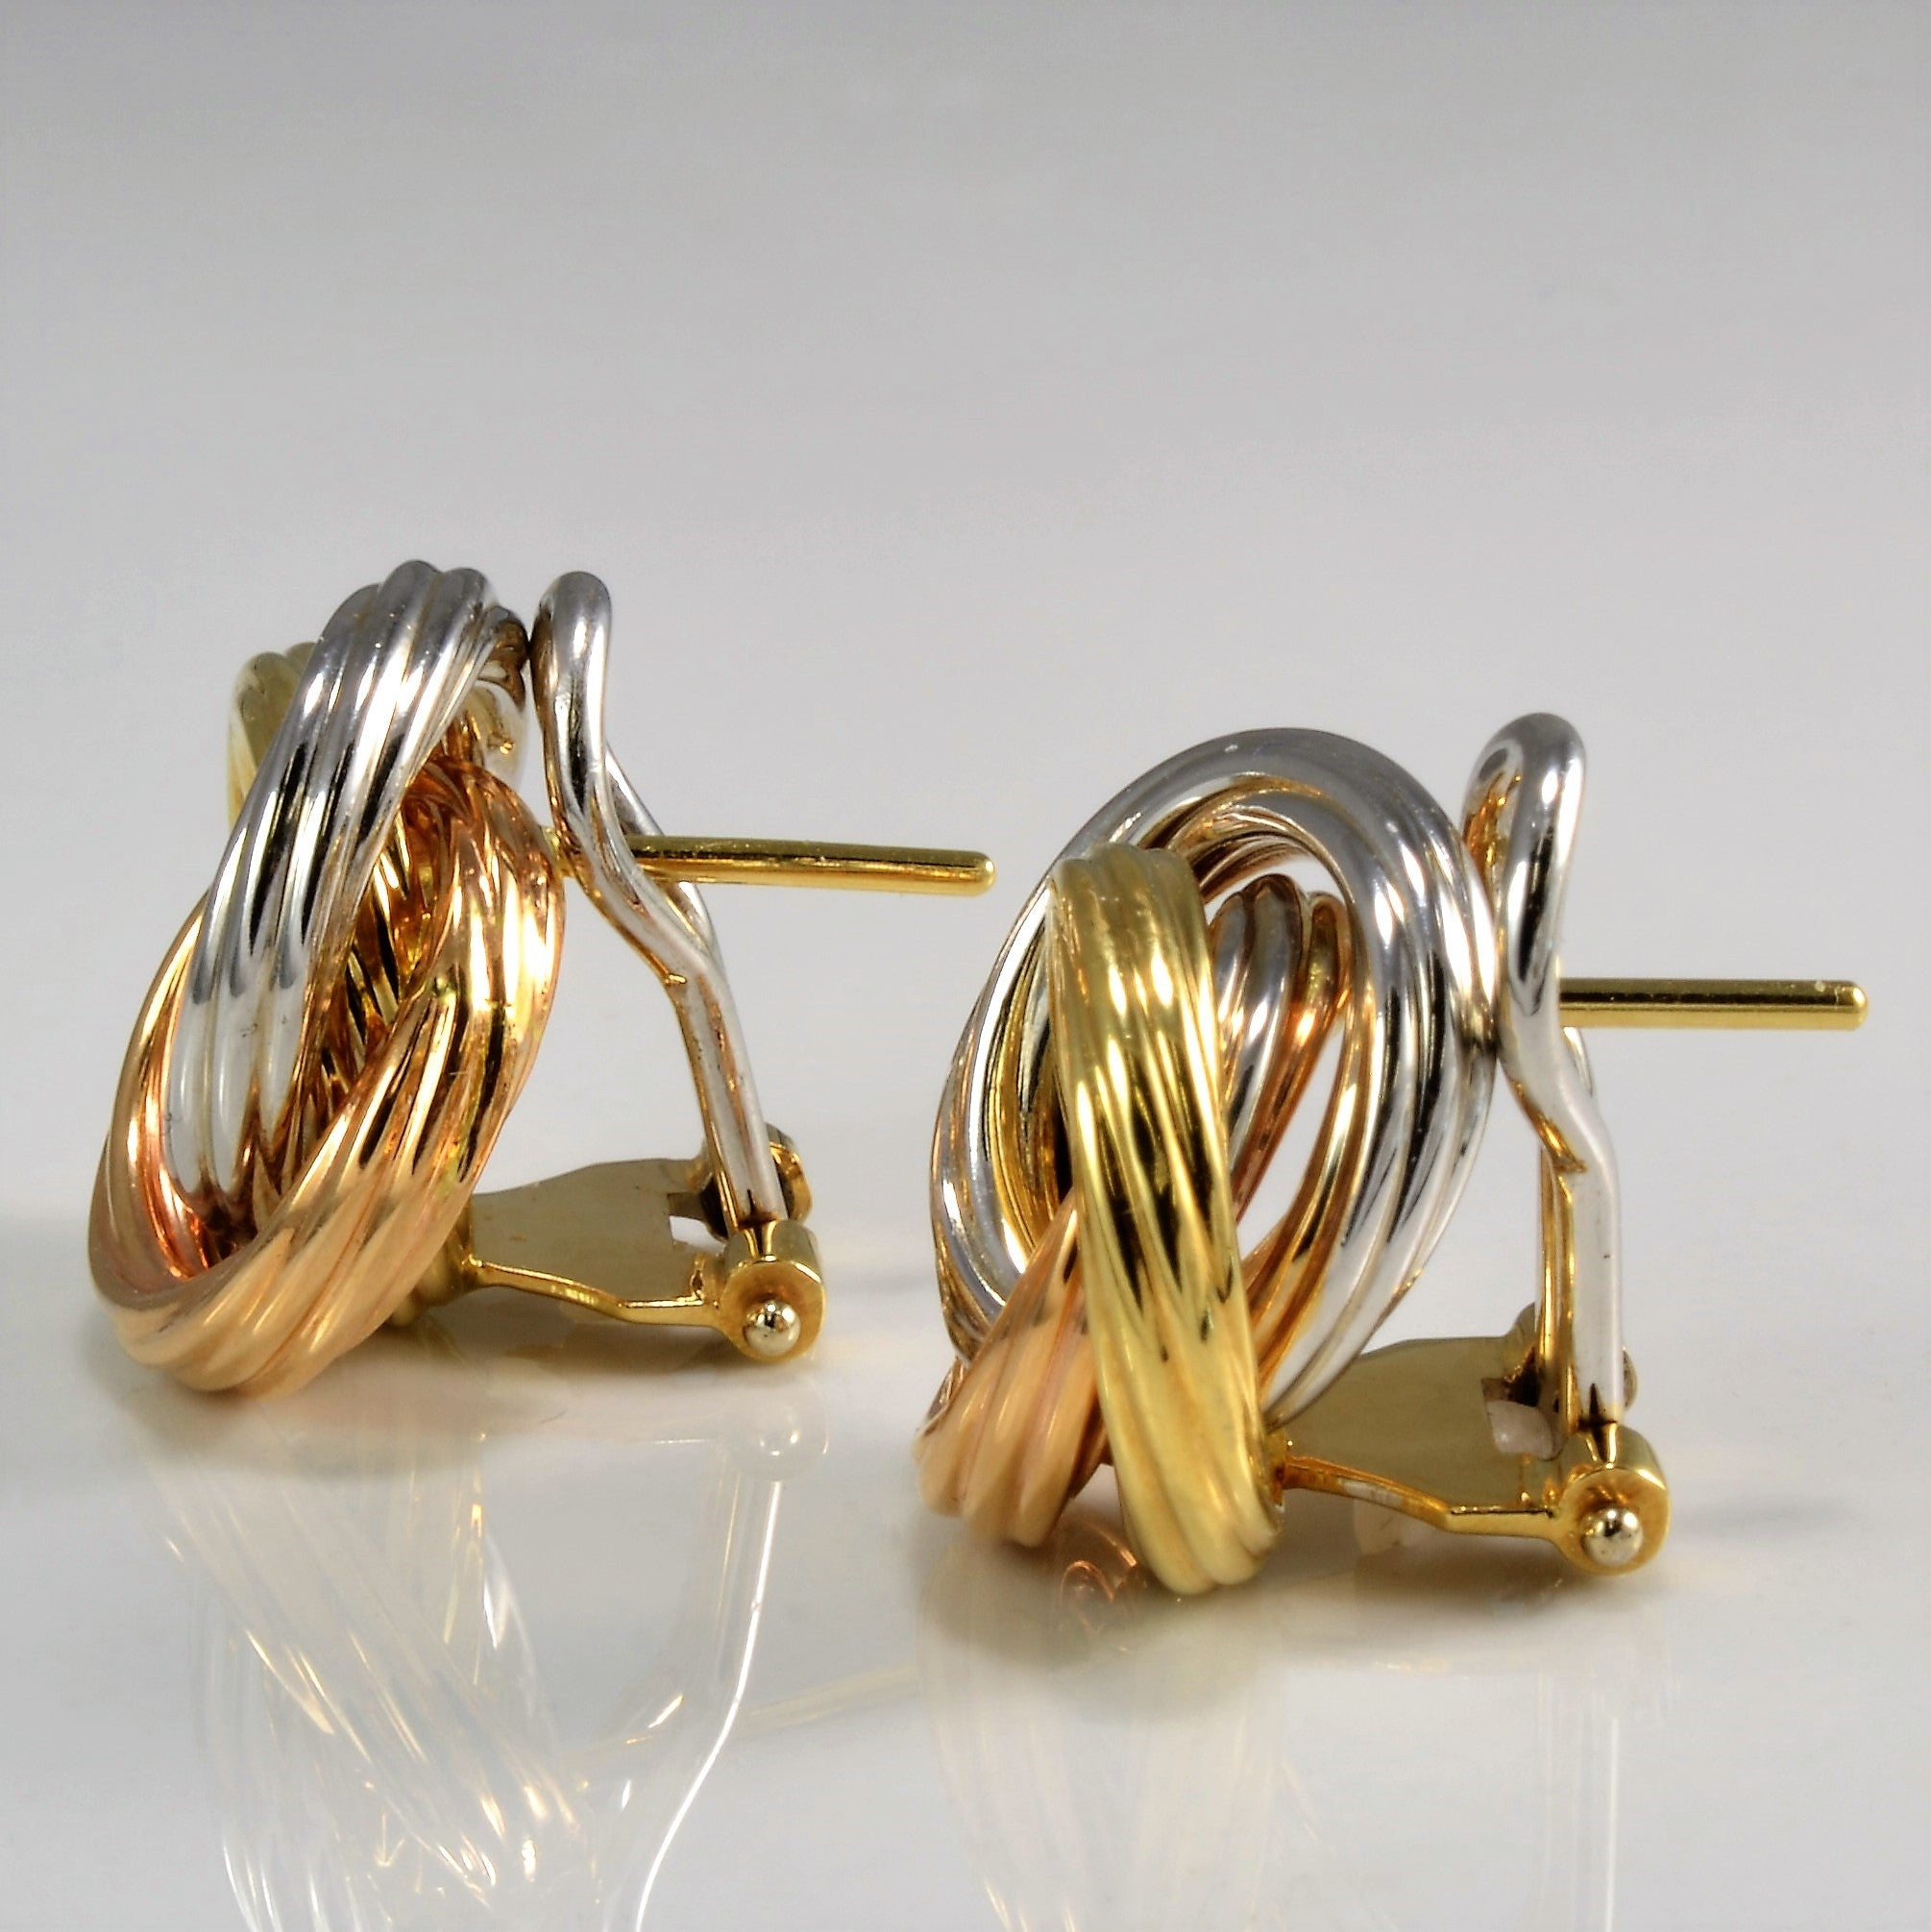 Trio Love Knot Earrings in 18K Tri-Color Gold